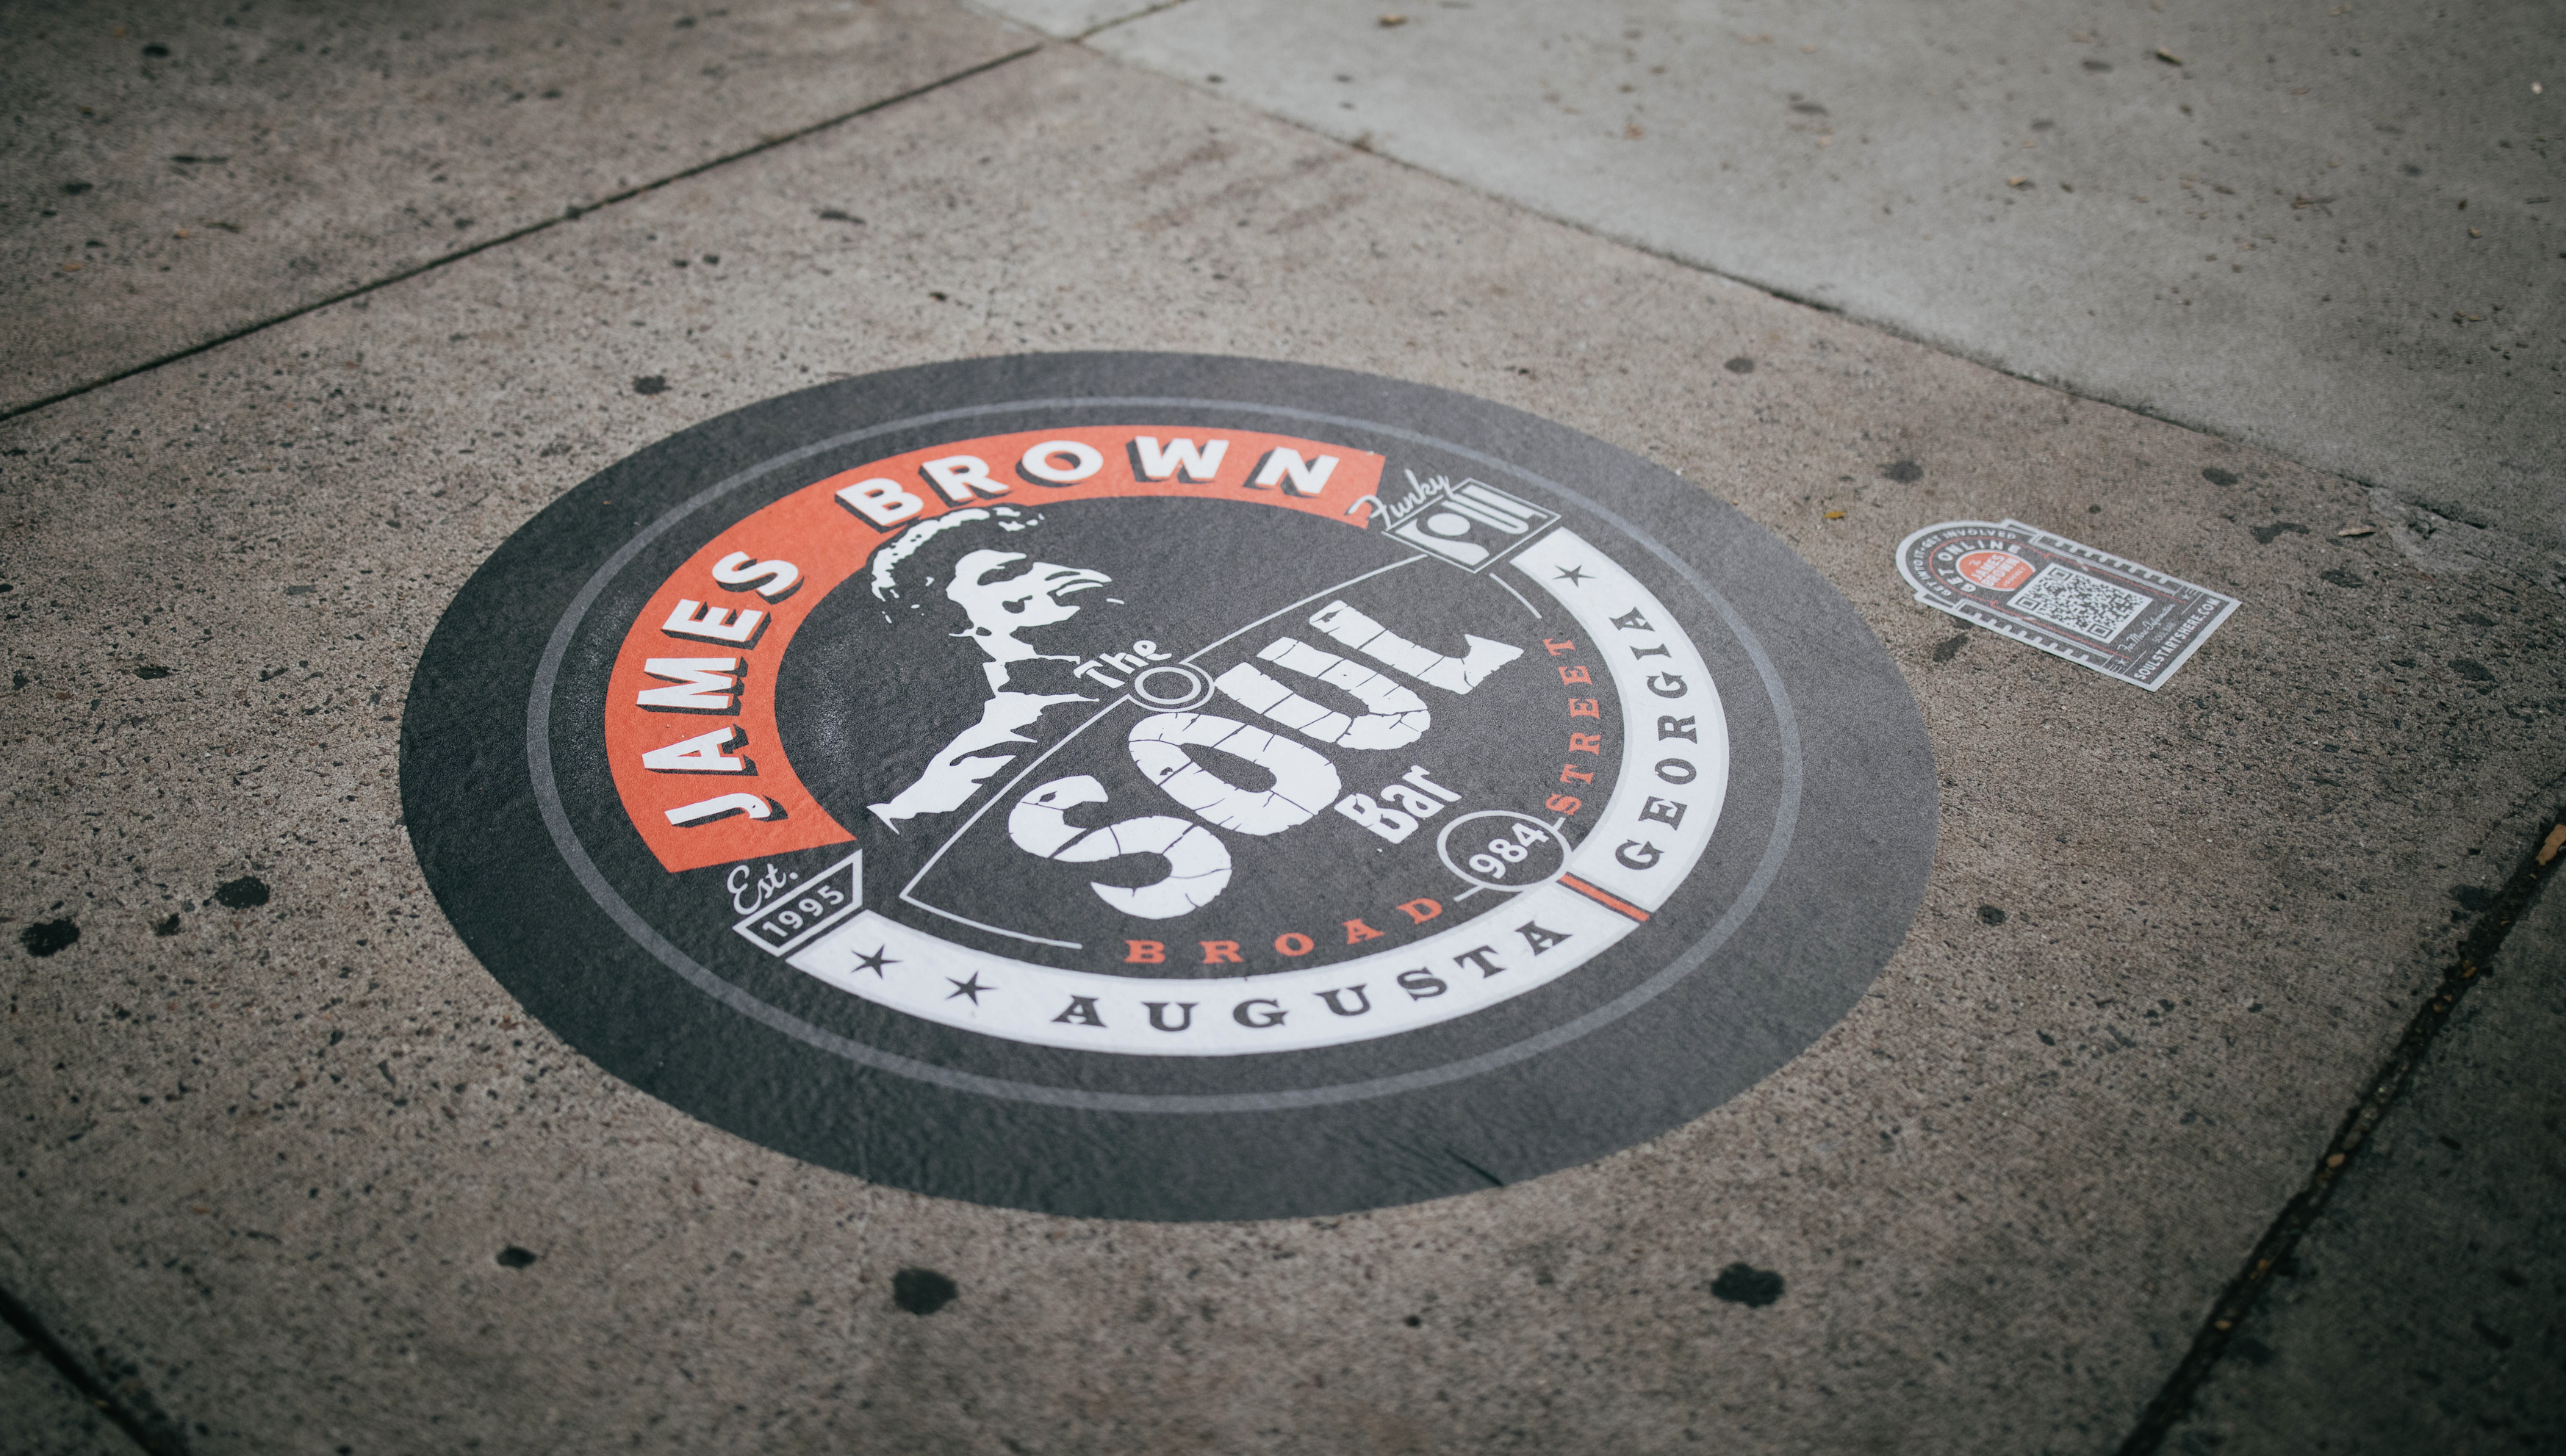 James Brown Arena Placemat - Black